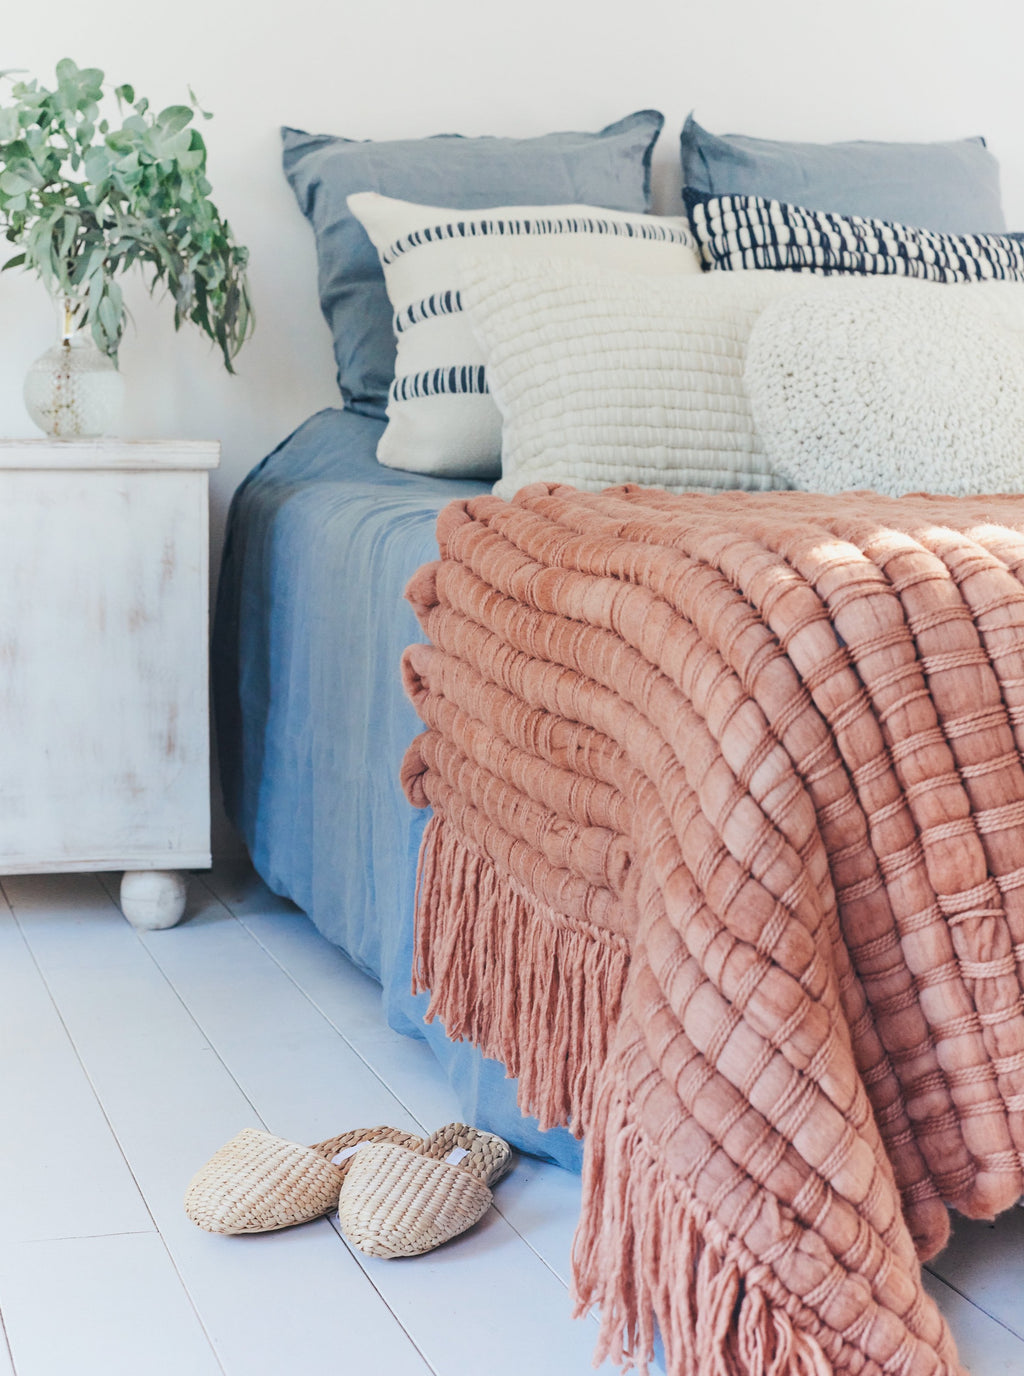 OSMIO Bed Cover in Dusty Rose